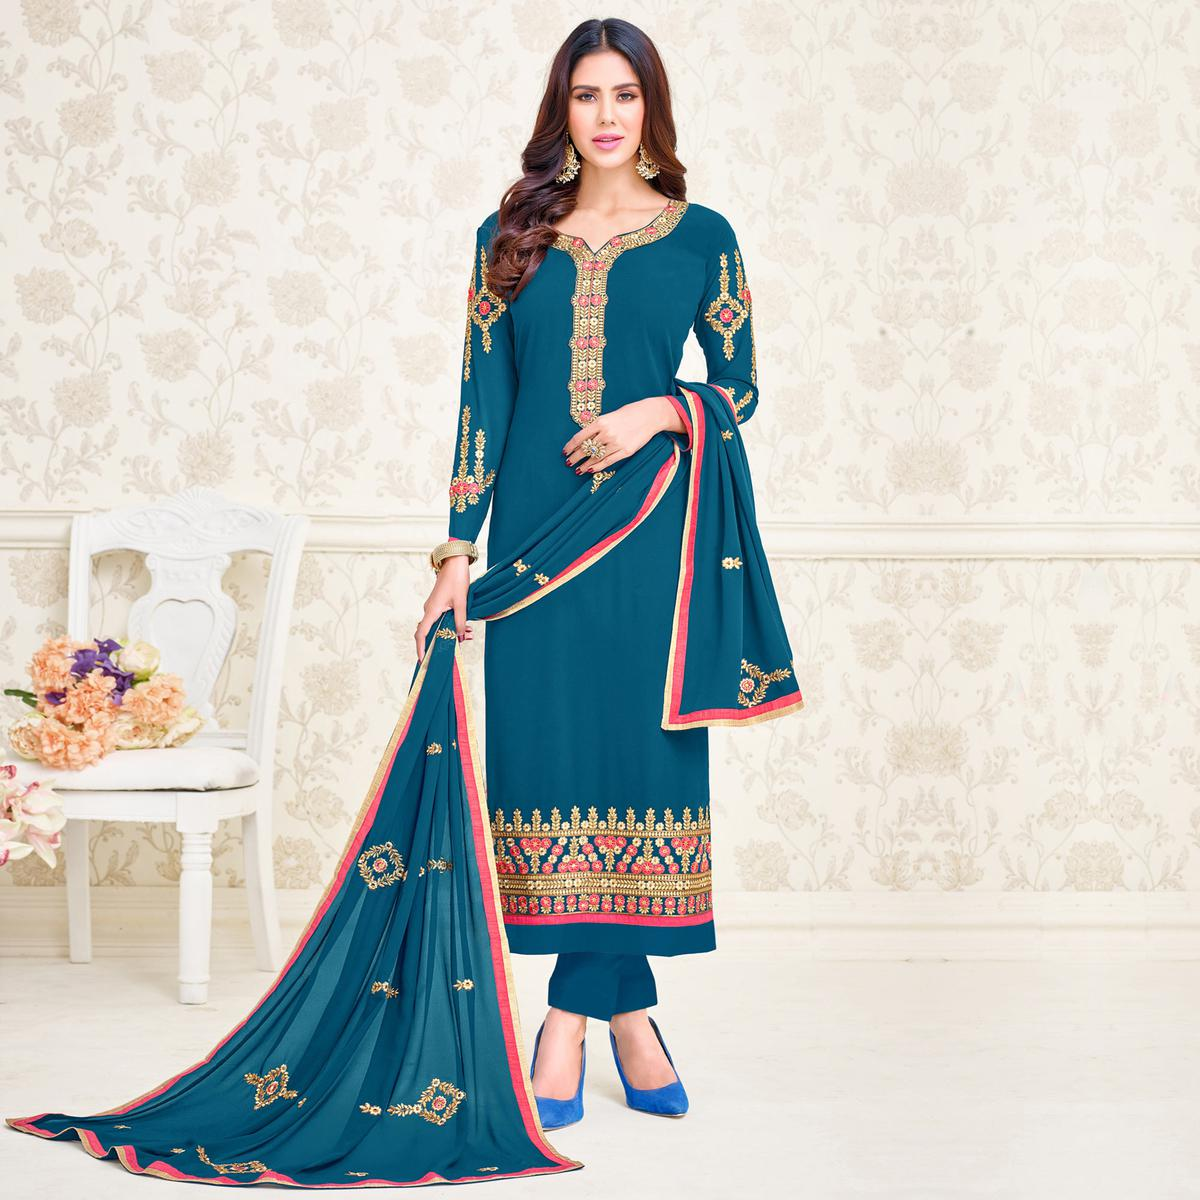 Unique Teal Blue Colored Partywear Embroidered Georgette Suit